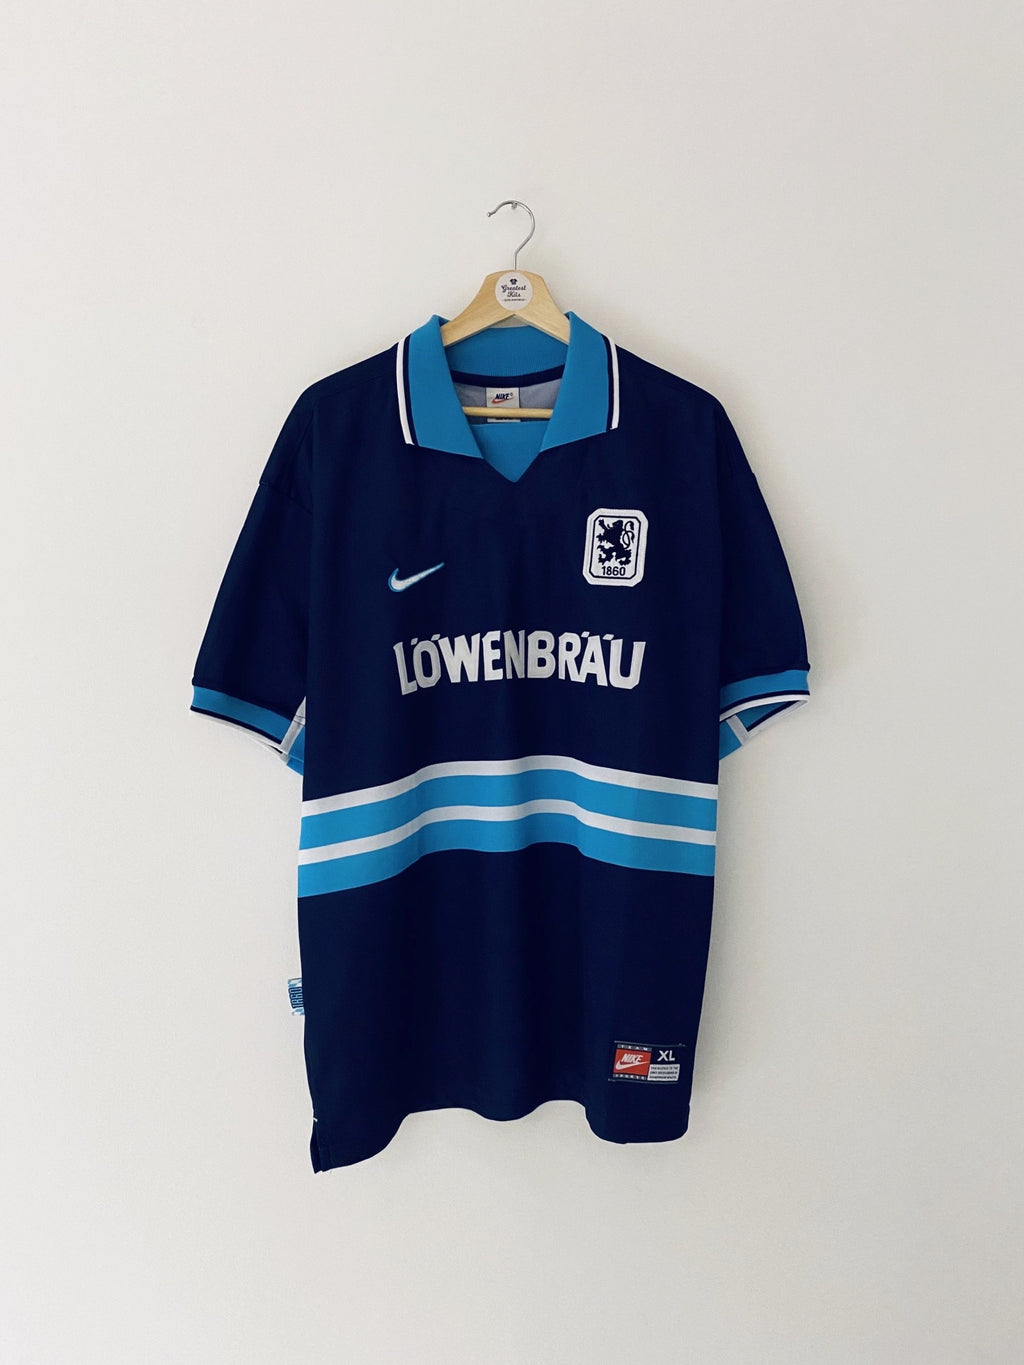 1997/98 1860 Munich Away Shirt (XL) 9/10